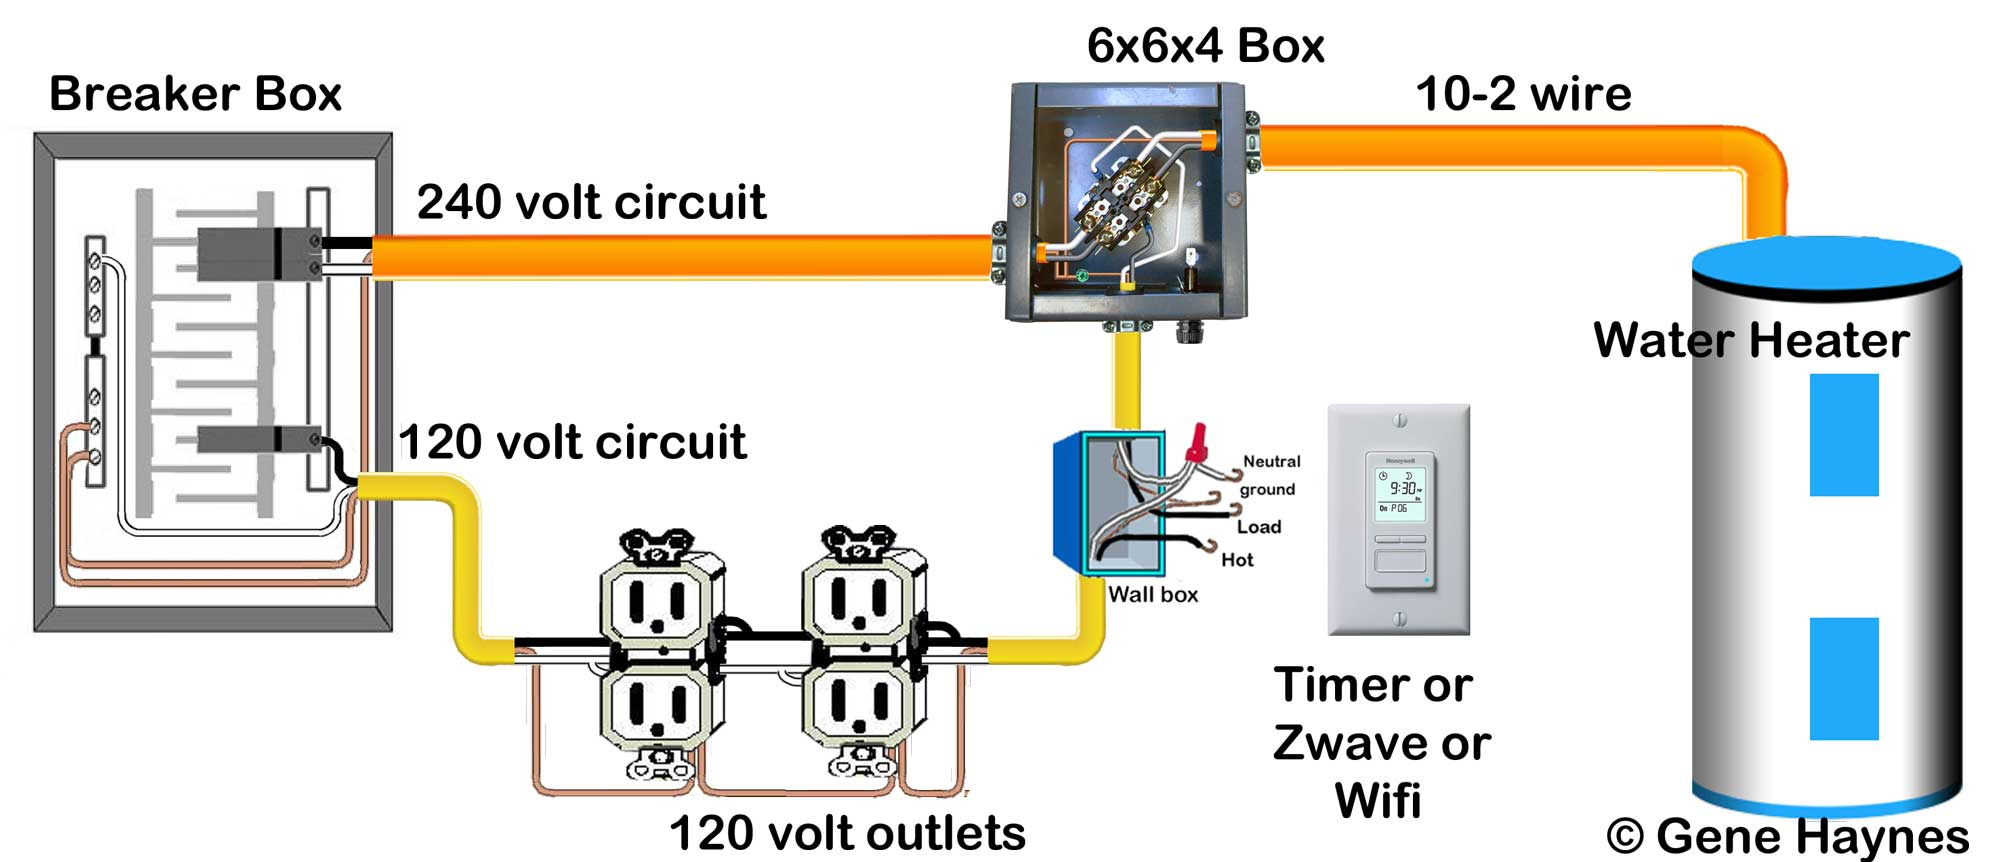 Basic Wiring Home Schematic Diagram Shed Wiringjpg House Installation 240 Volt Circuits Can Be Controlled By 120v Using A